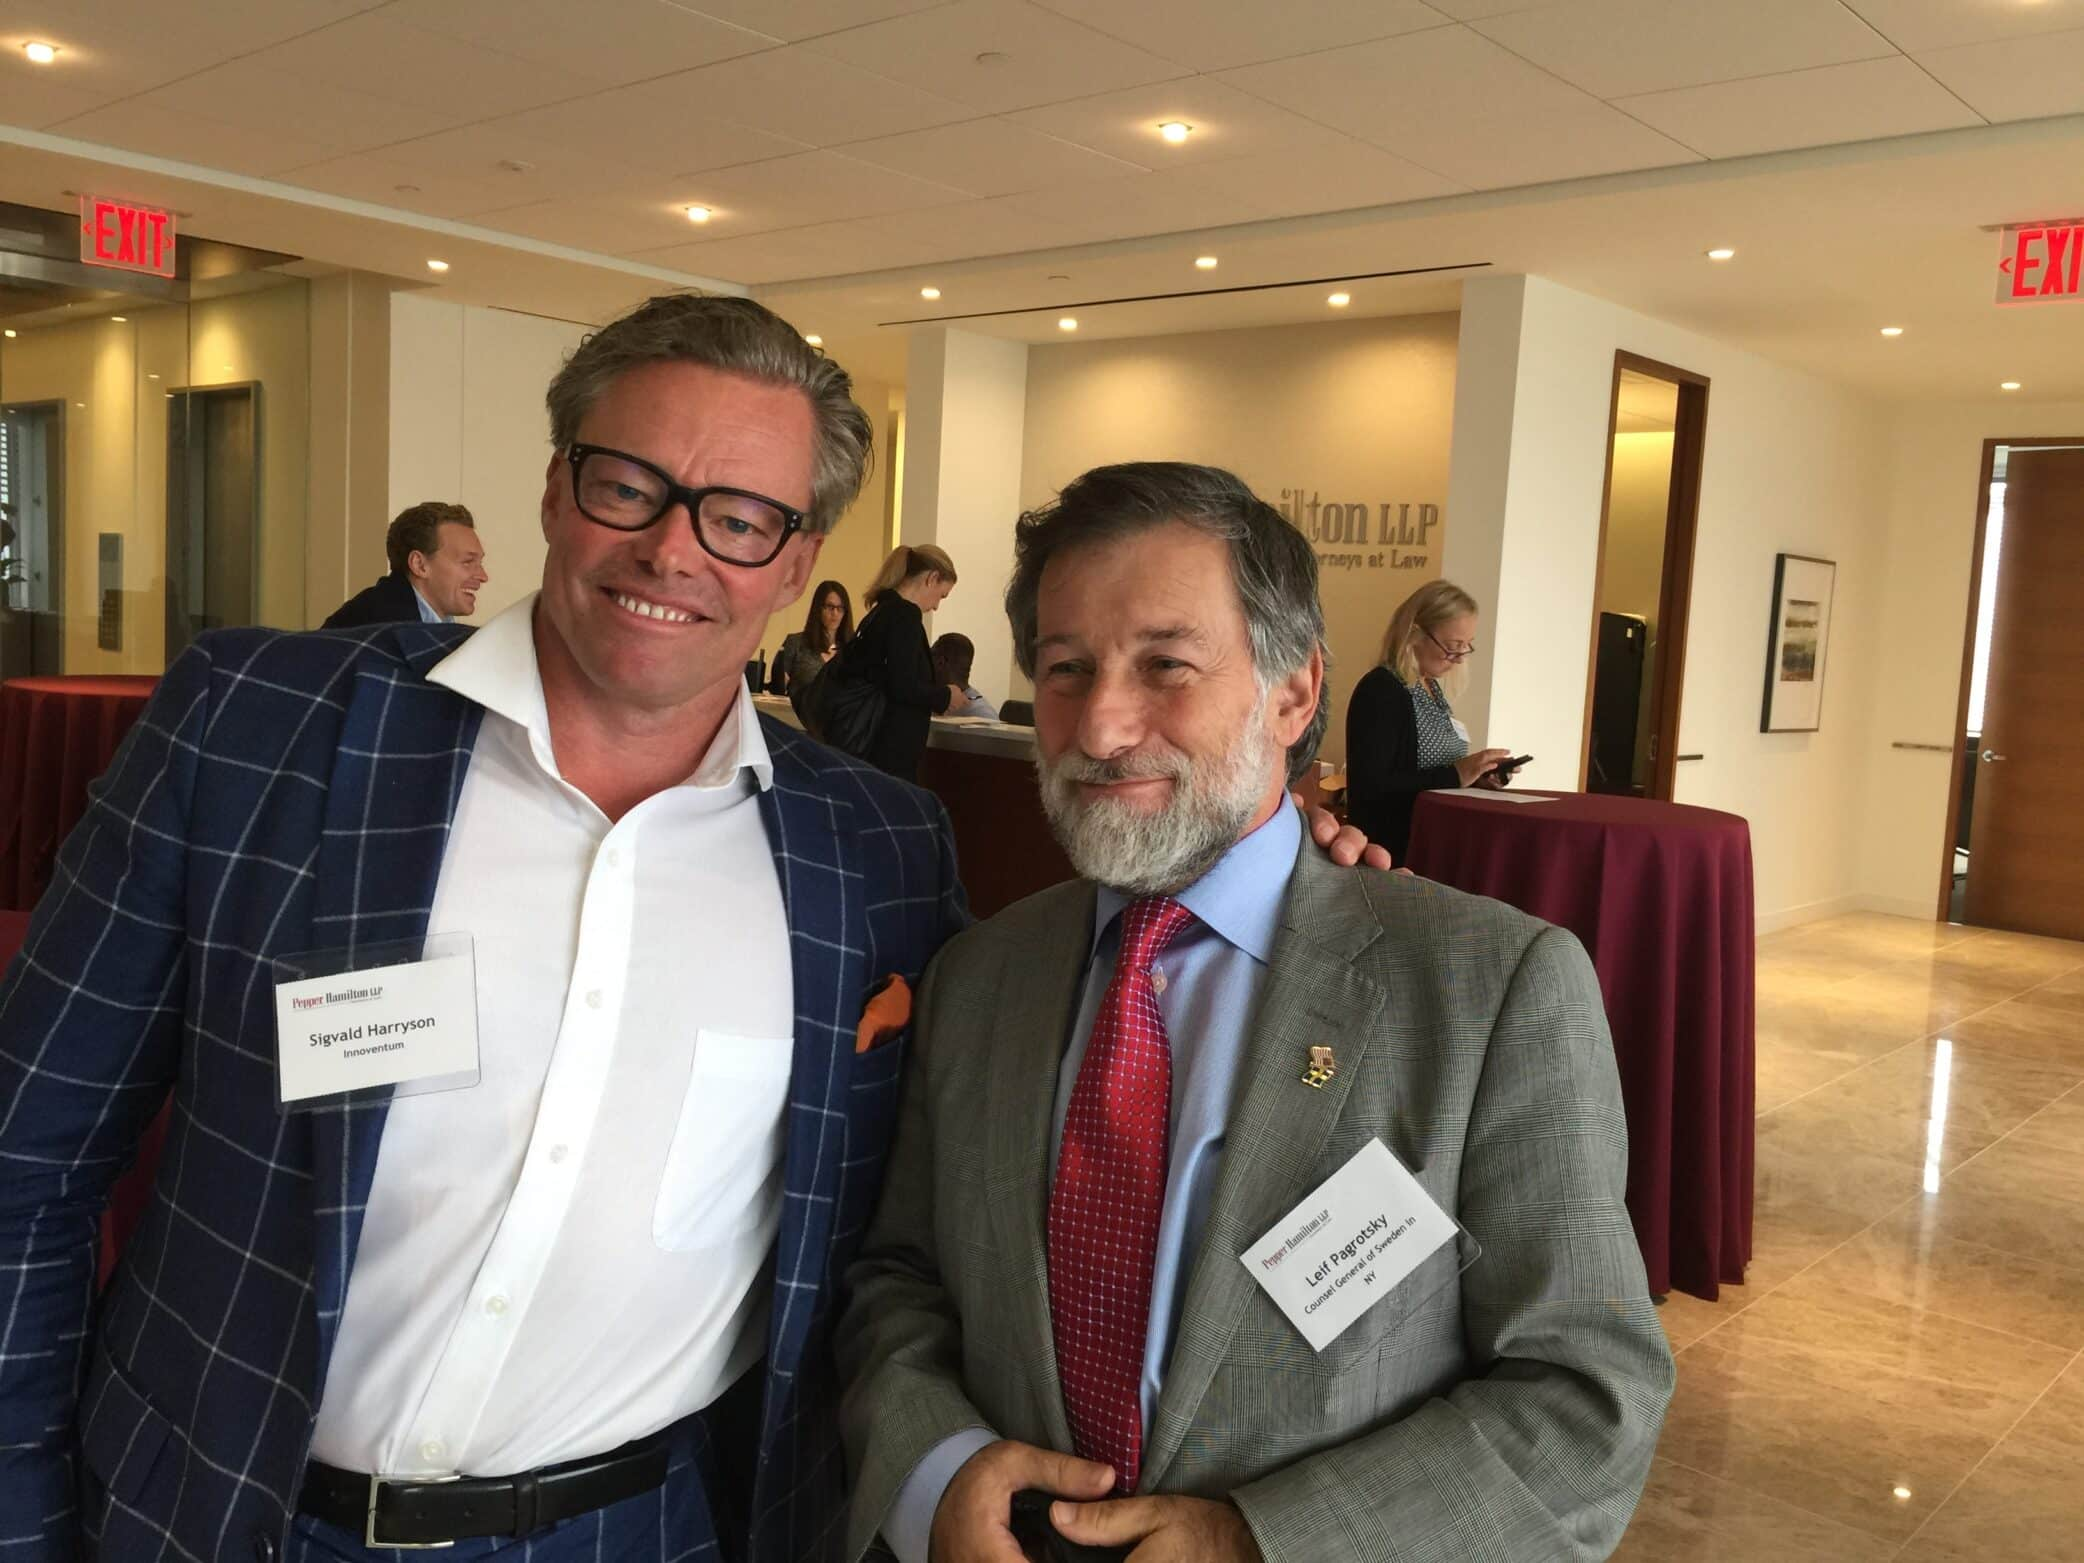 Our CEO Sigvald Harryson with Leif Pagrotsky